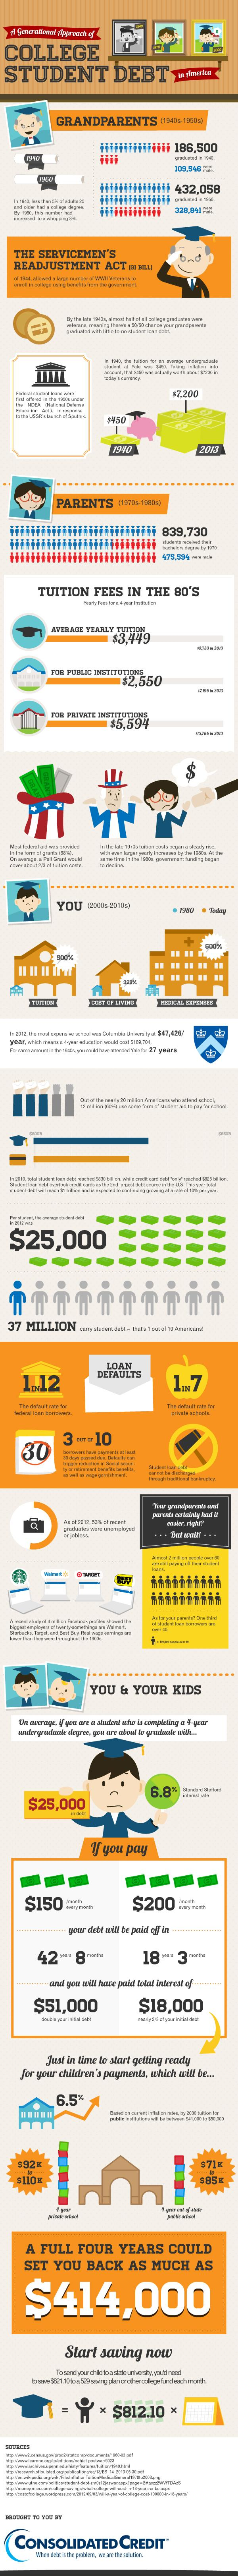 Consolidated-Credit-update Infographic